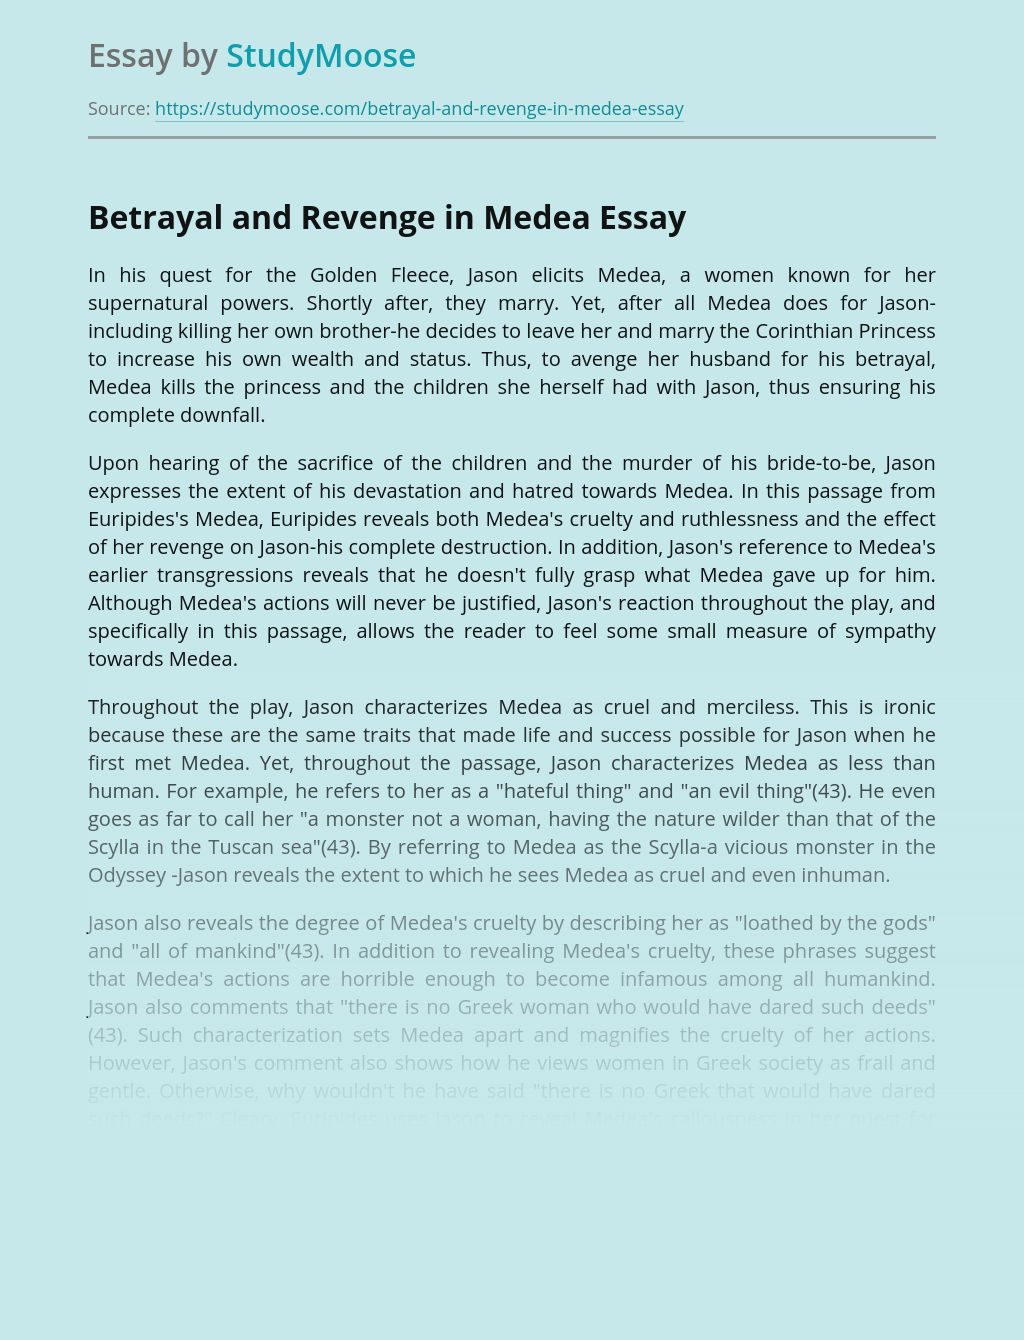 Betrayal and Revenge in Medea